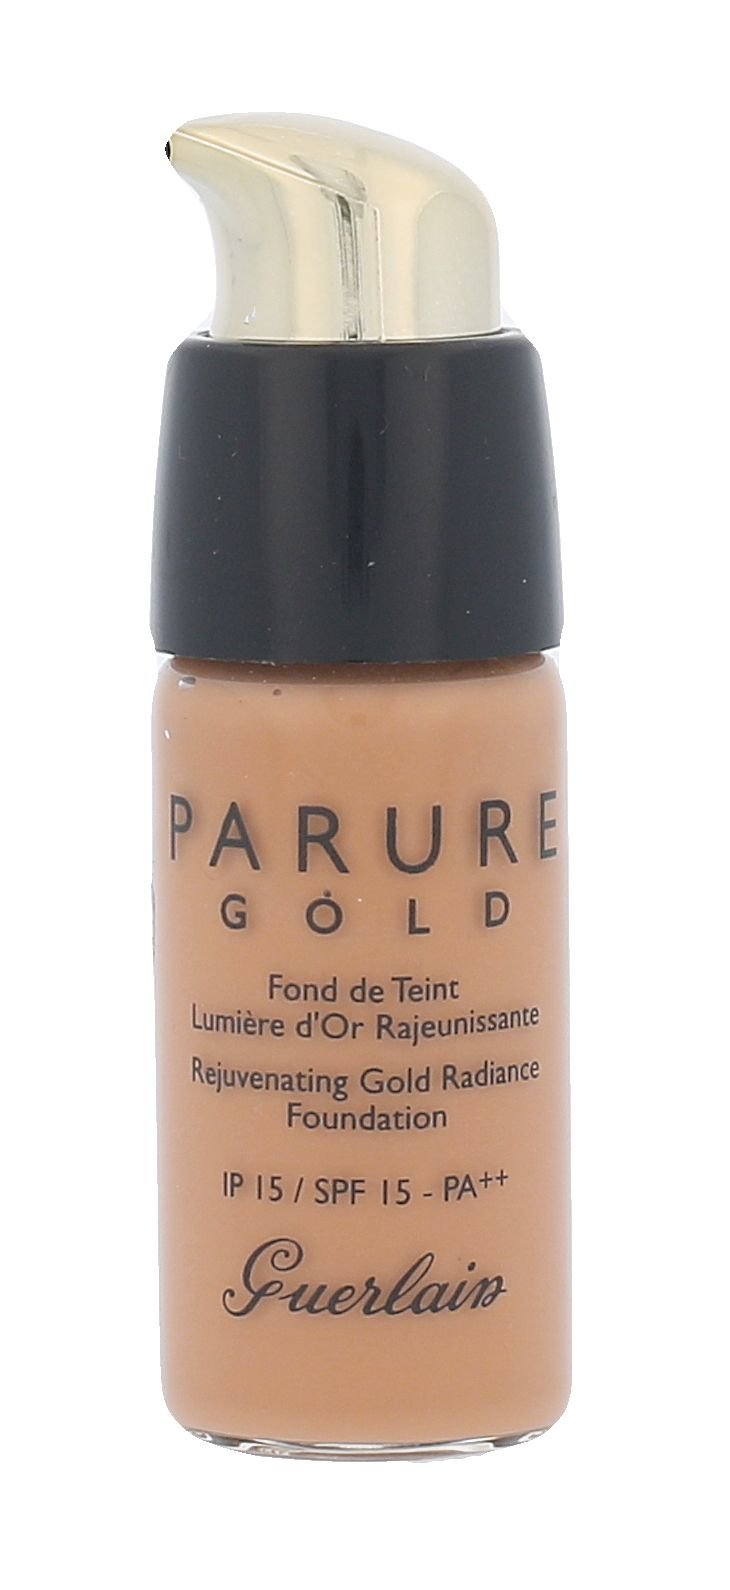 Guerlain Parure Gold Cosmetic 15ml 05 Beige Intense SPF15